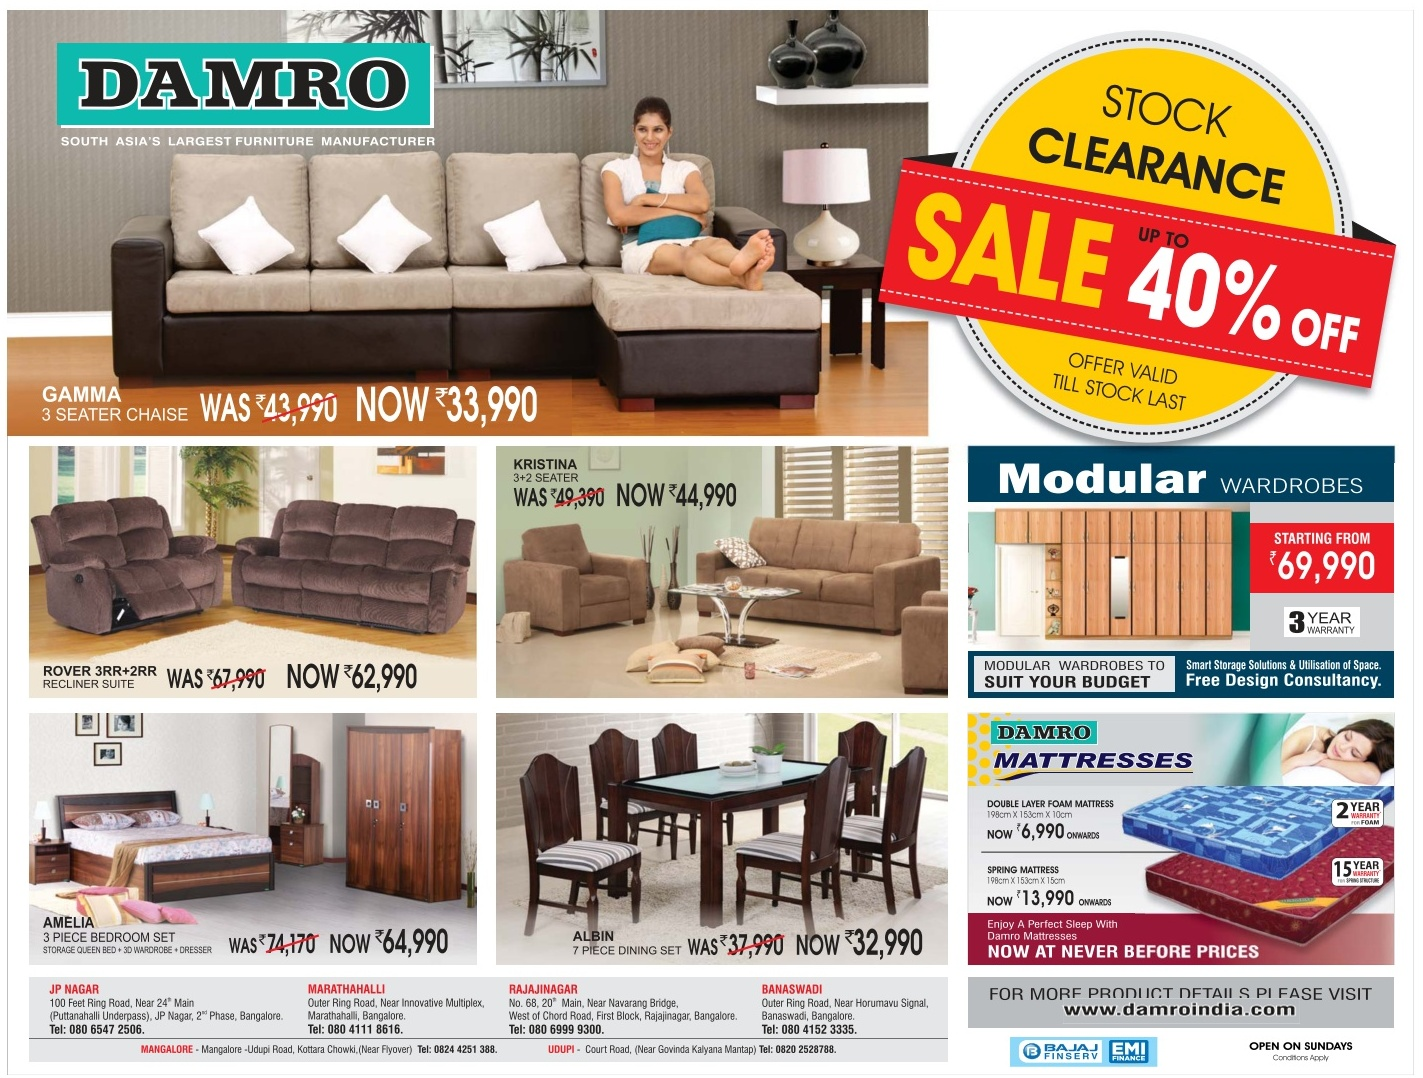 Cherry pick furniture koramangala ad advert gallery Best home furniture in bangalore